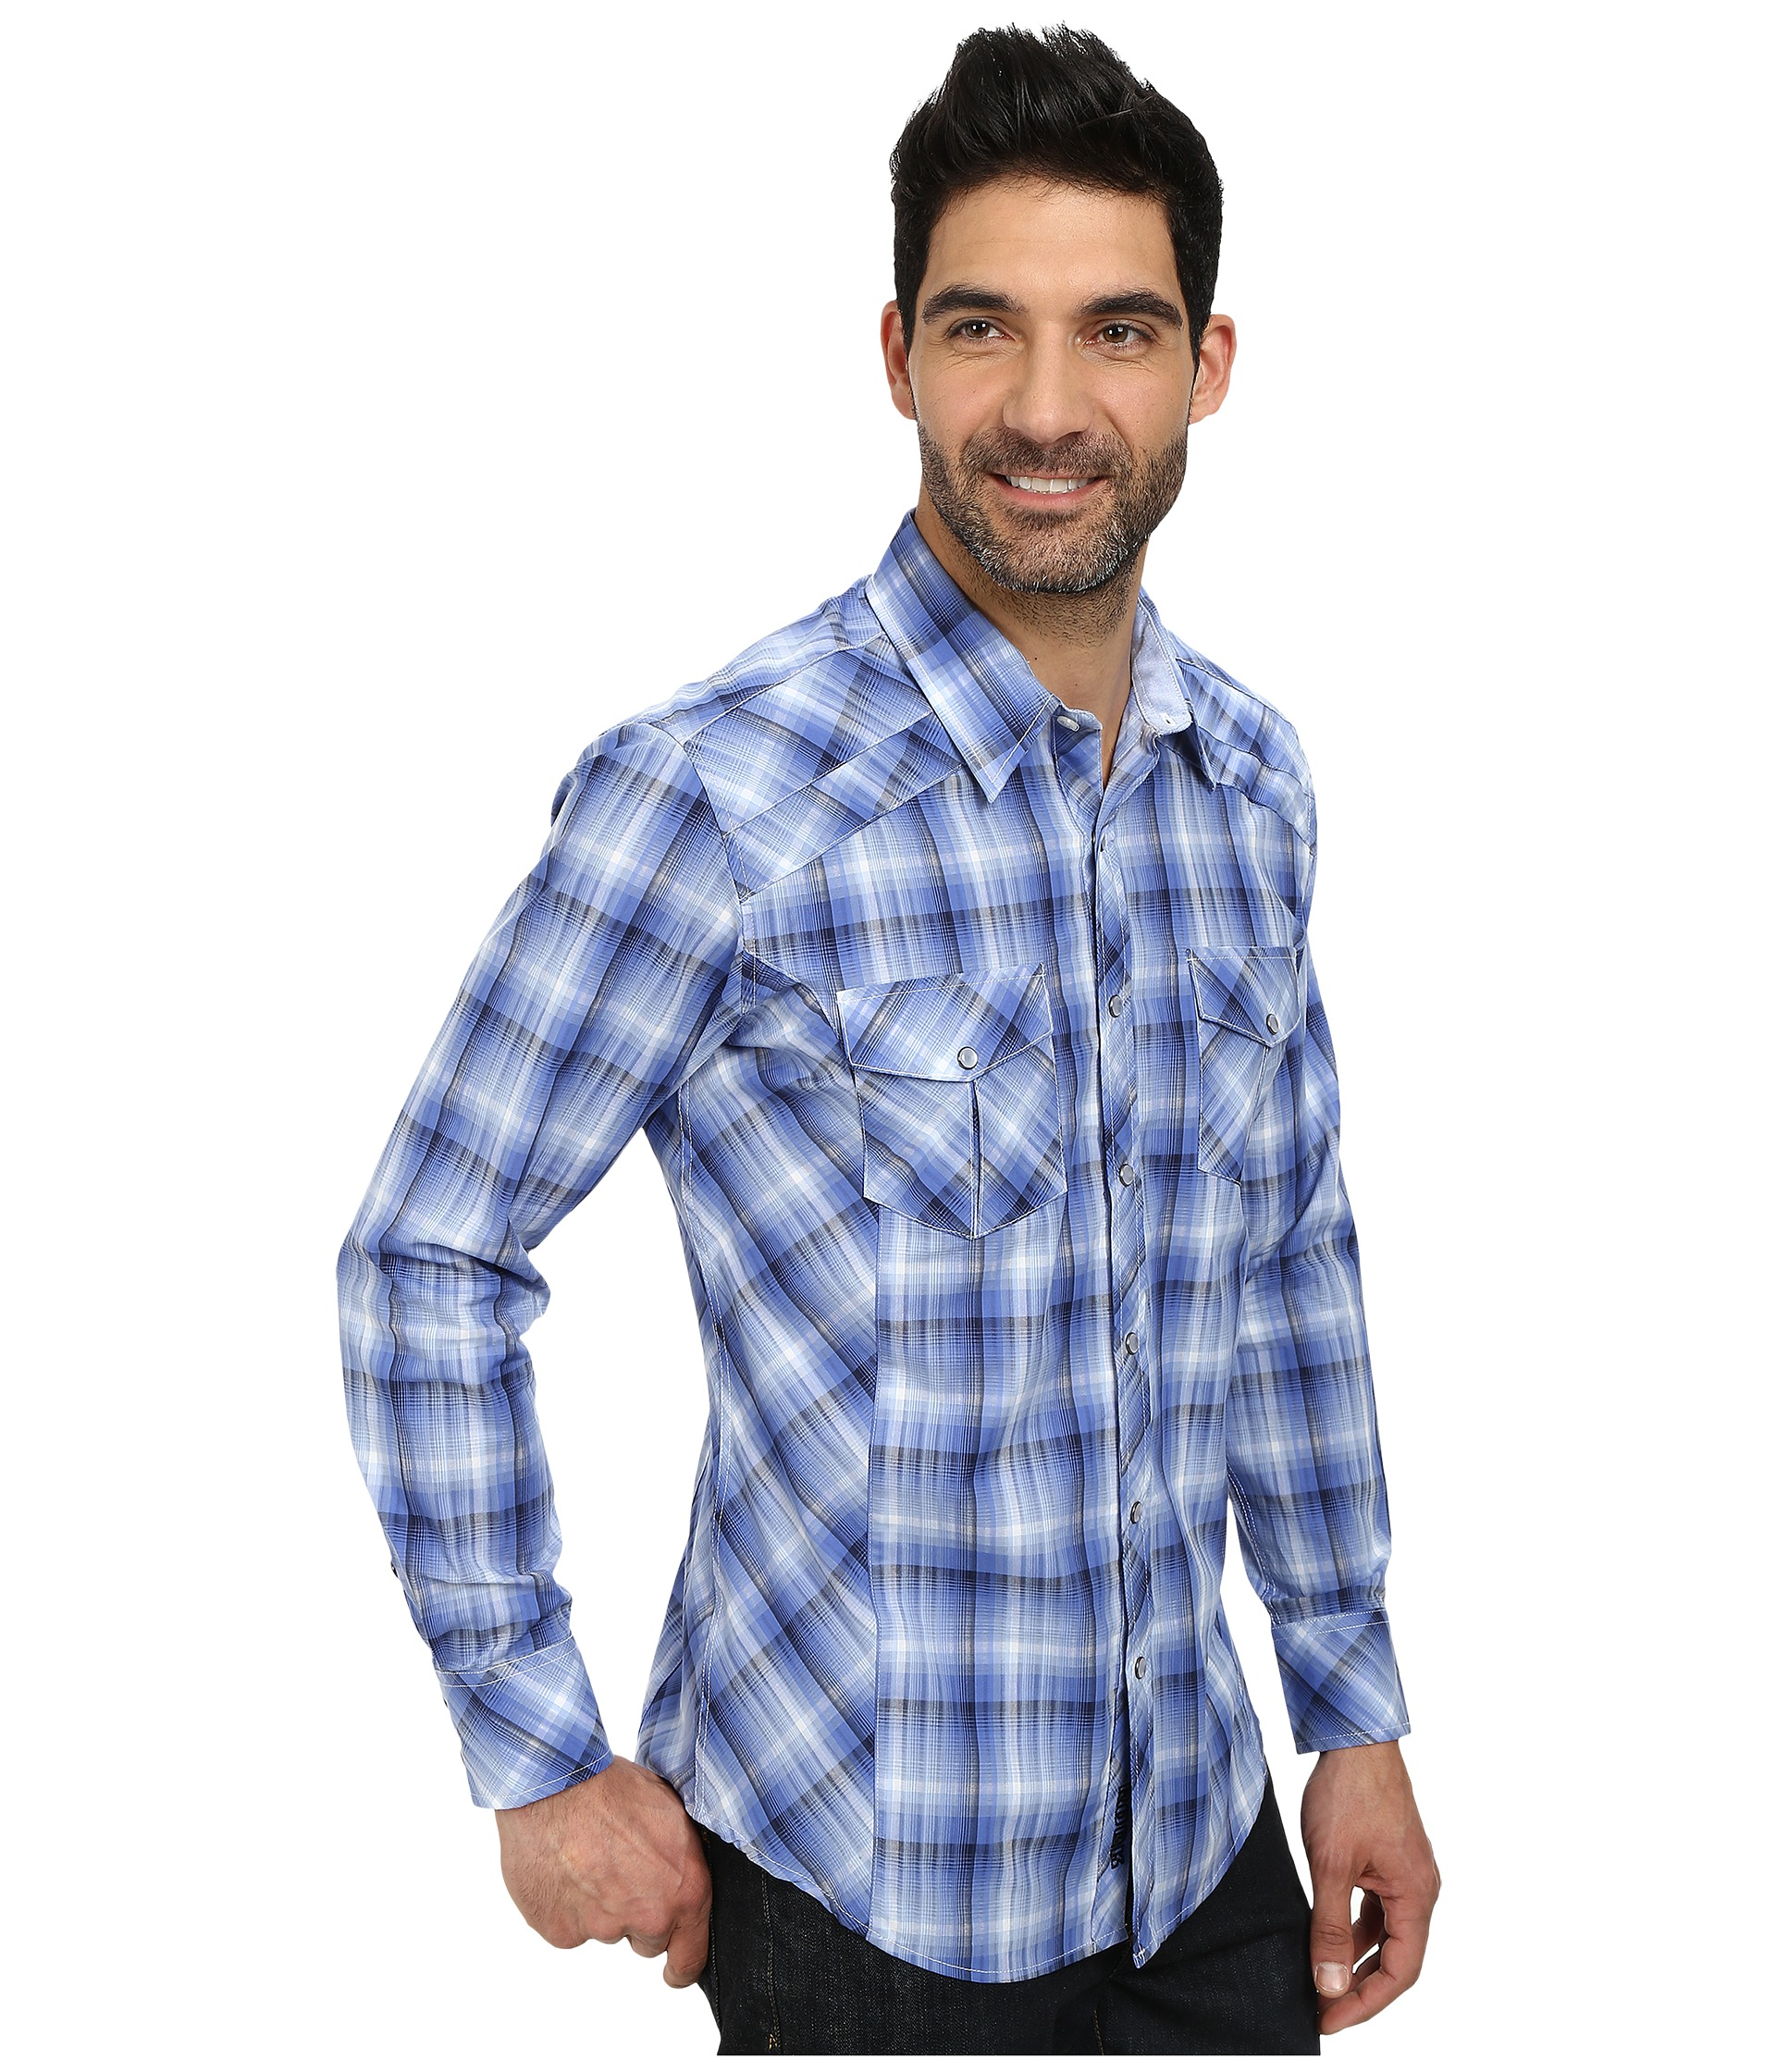 Untucked shirts deals on 1001 blocks for Untucked shirts for sale